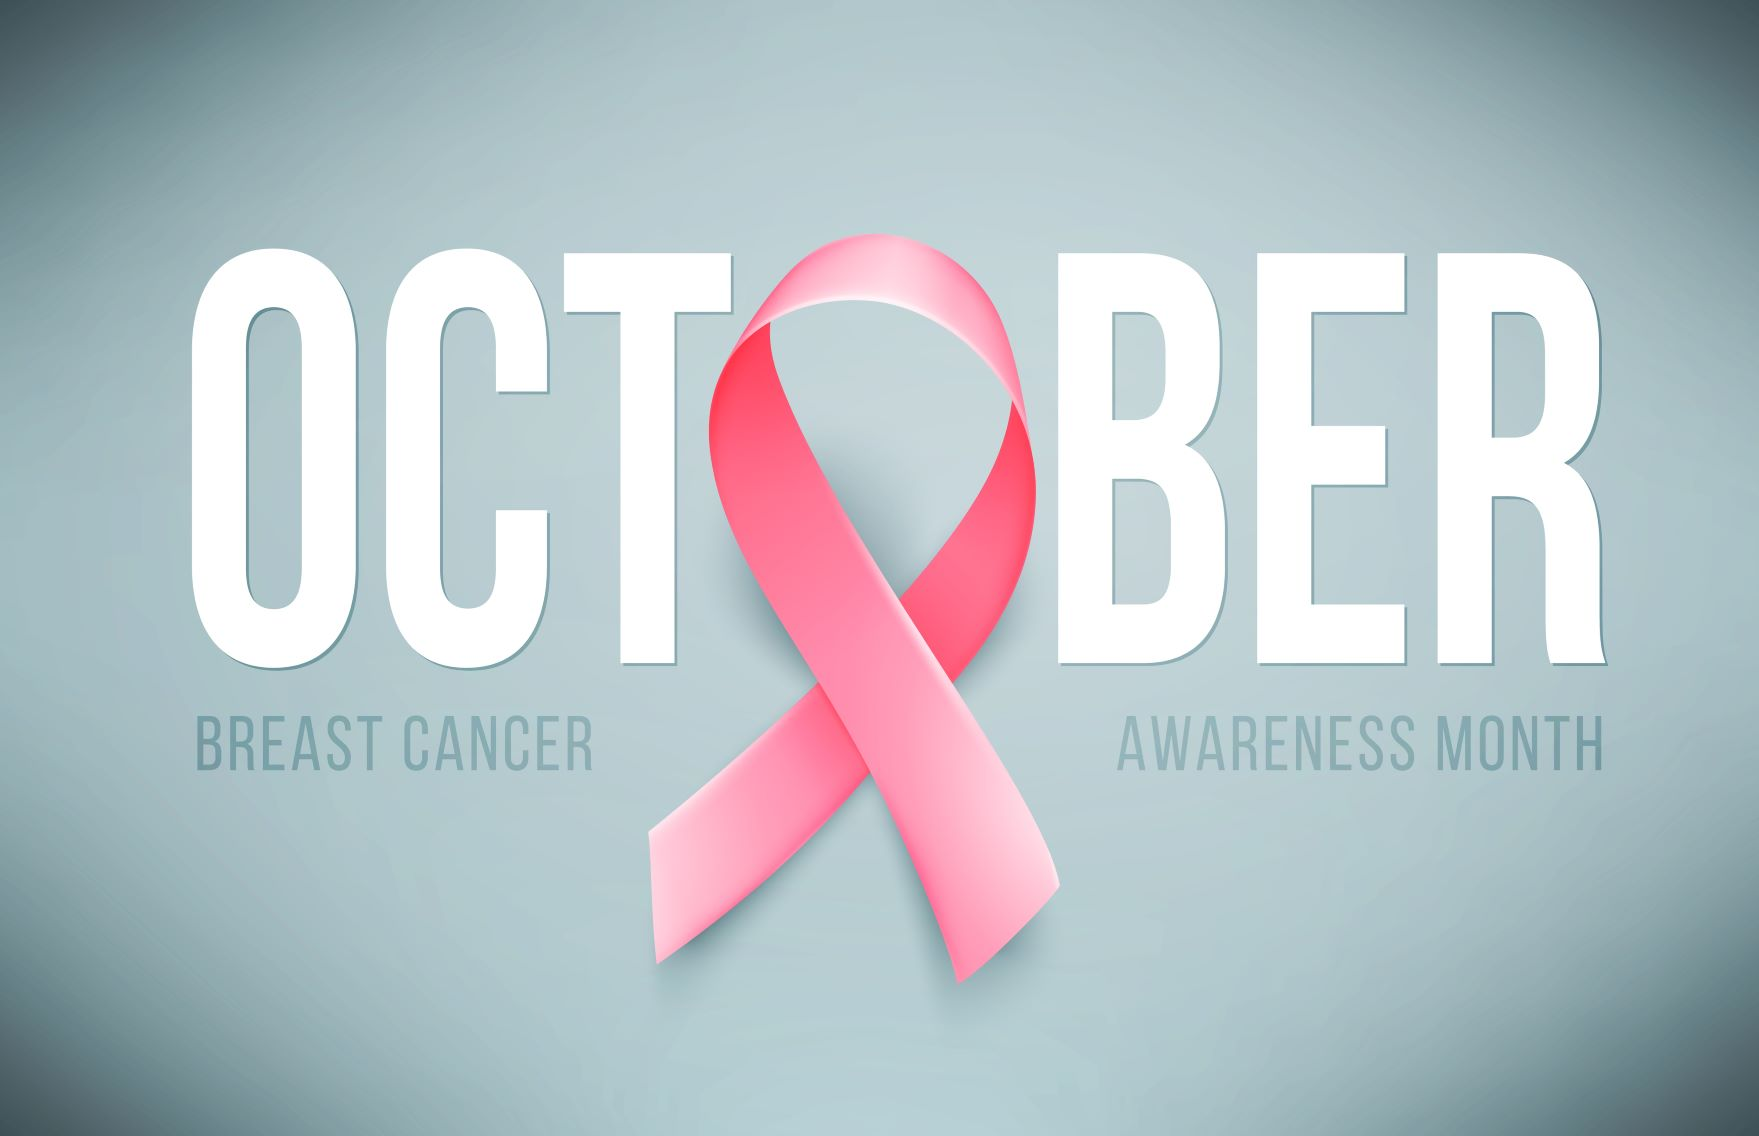 Oct is Breast Cancer Awareness